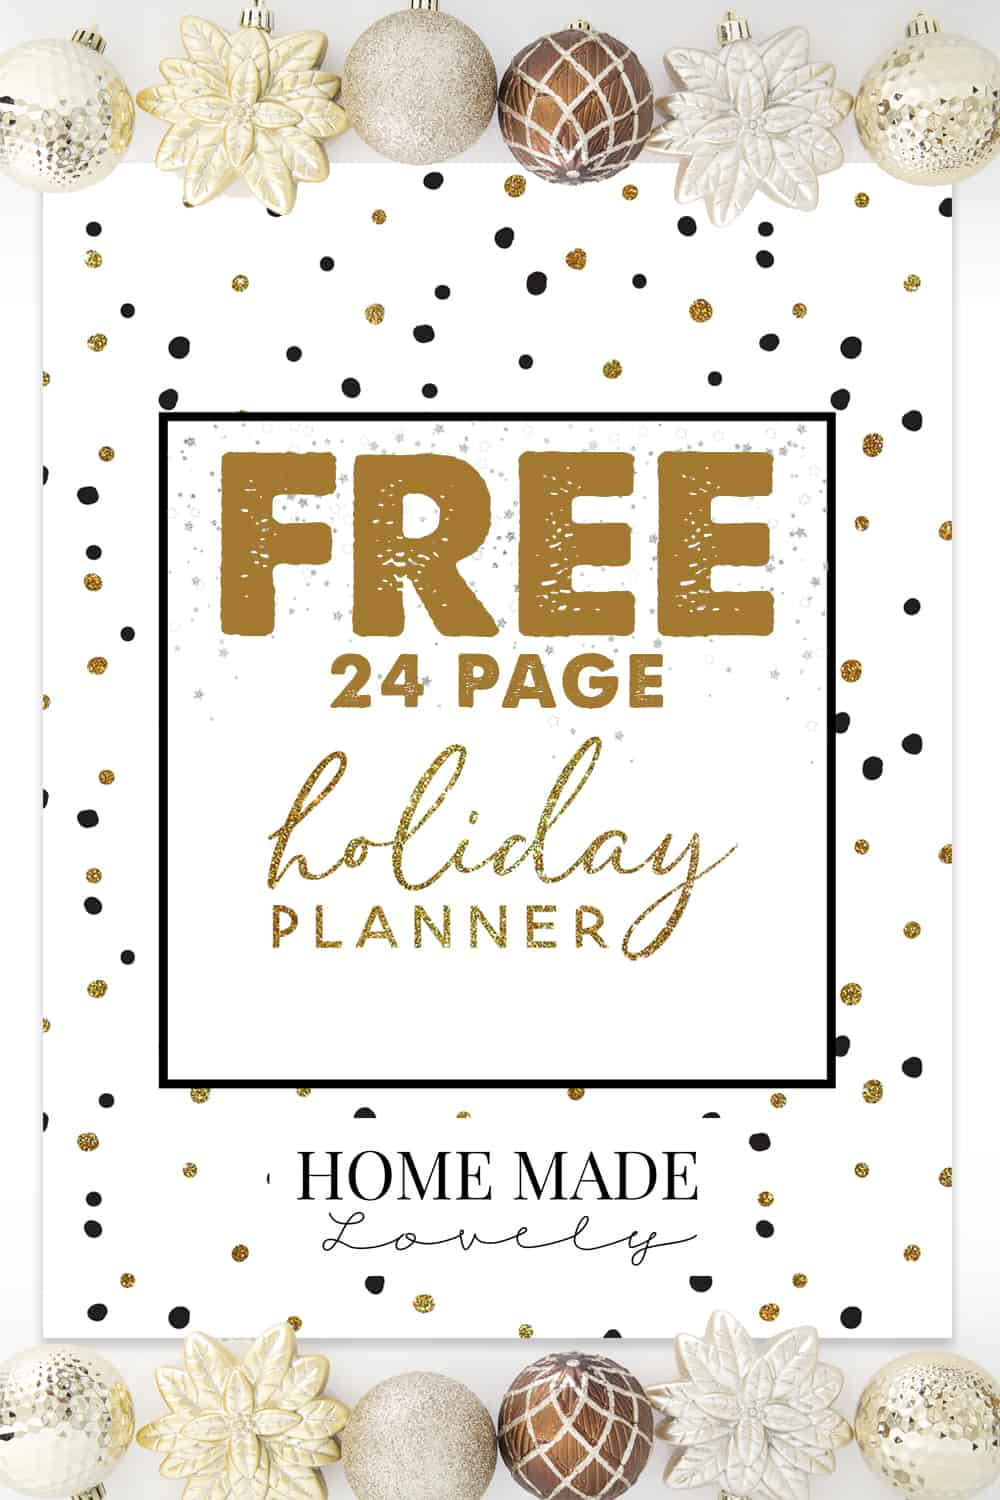 photograph about Free Printable Christmas Planner named Absolutely free Vacation Planner Pack - 23 Free of charge Printable Internet pages in direction of Program